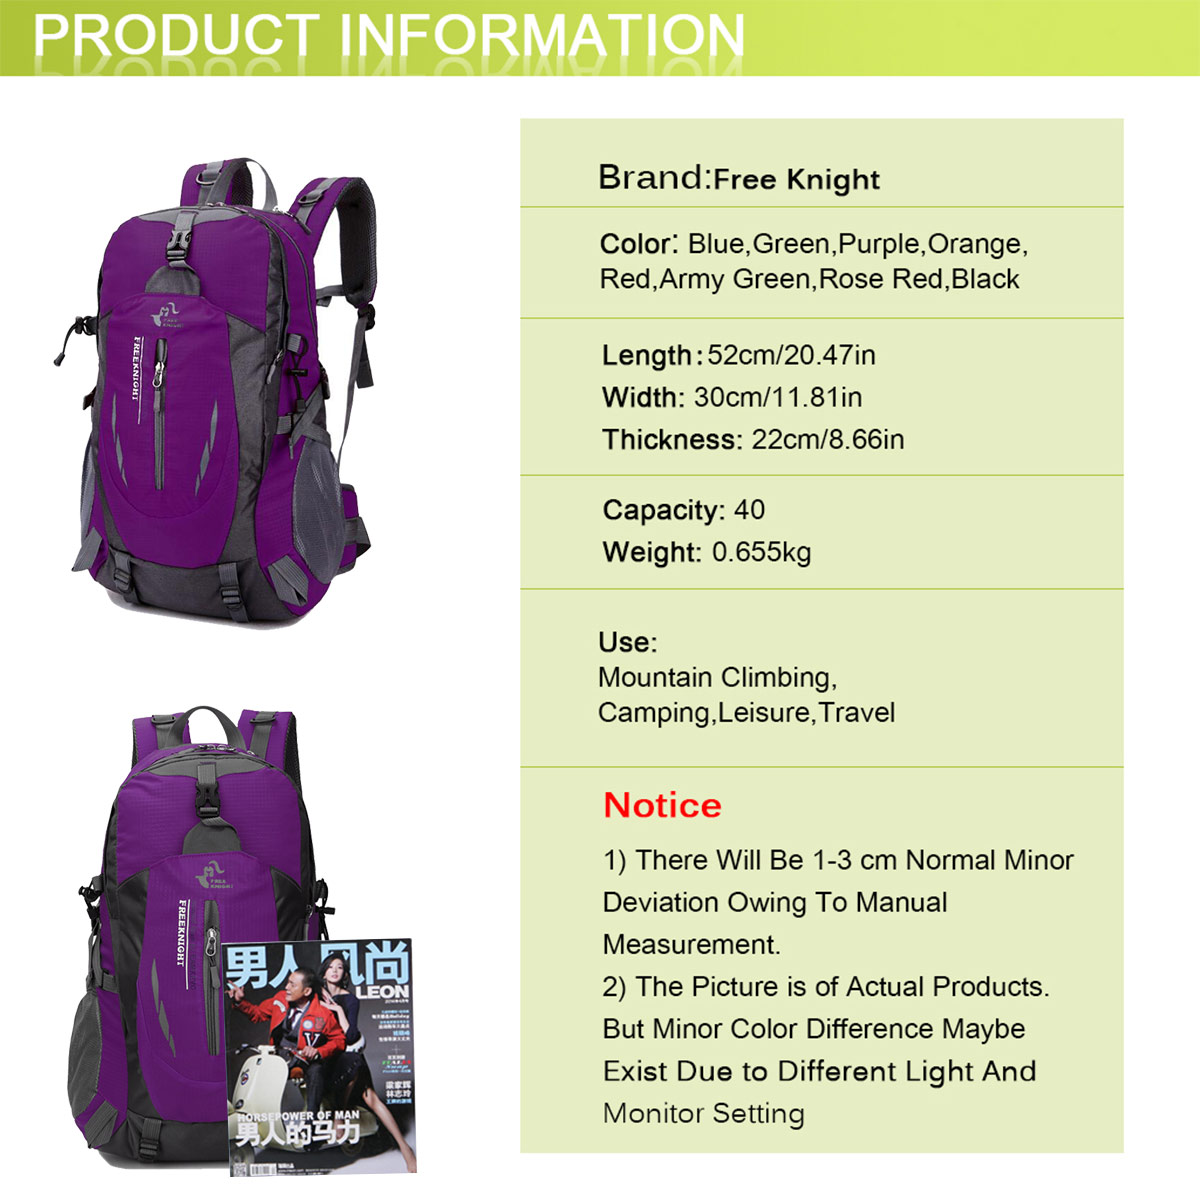 BAG005 Outdoor Hiking Camping Water Resistant Nylon Travel Luggage Rucksack Backpack Bag